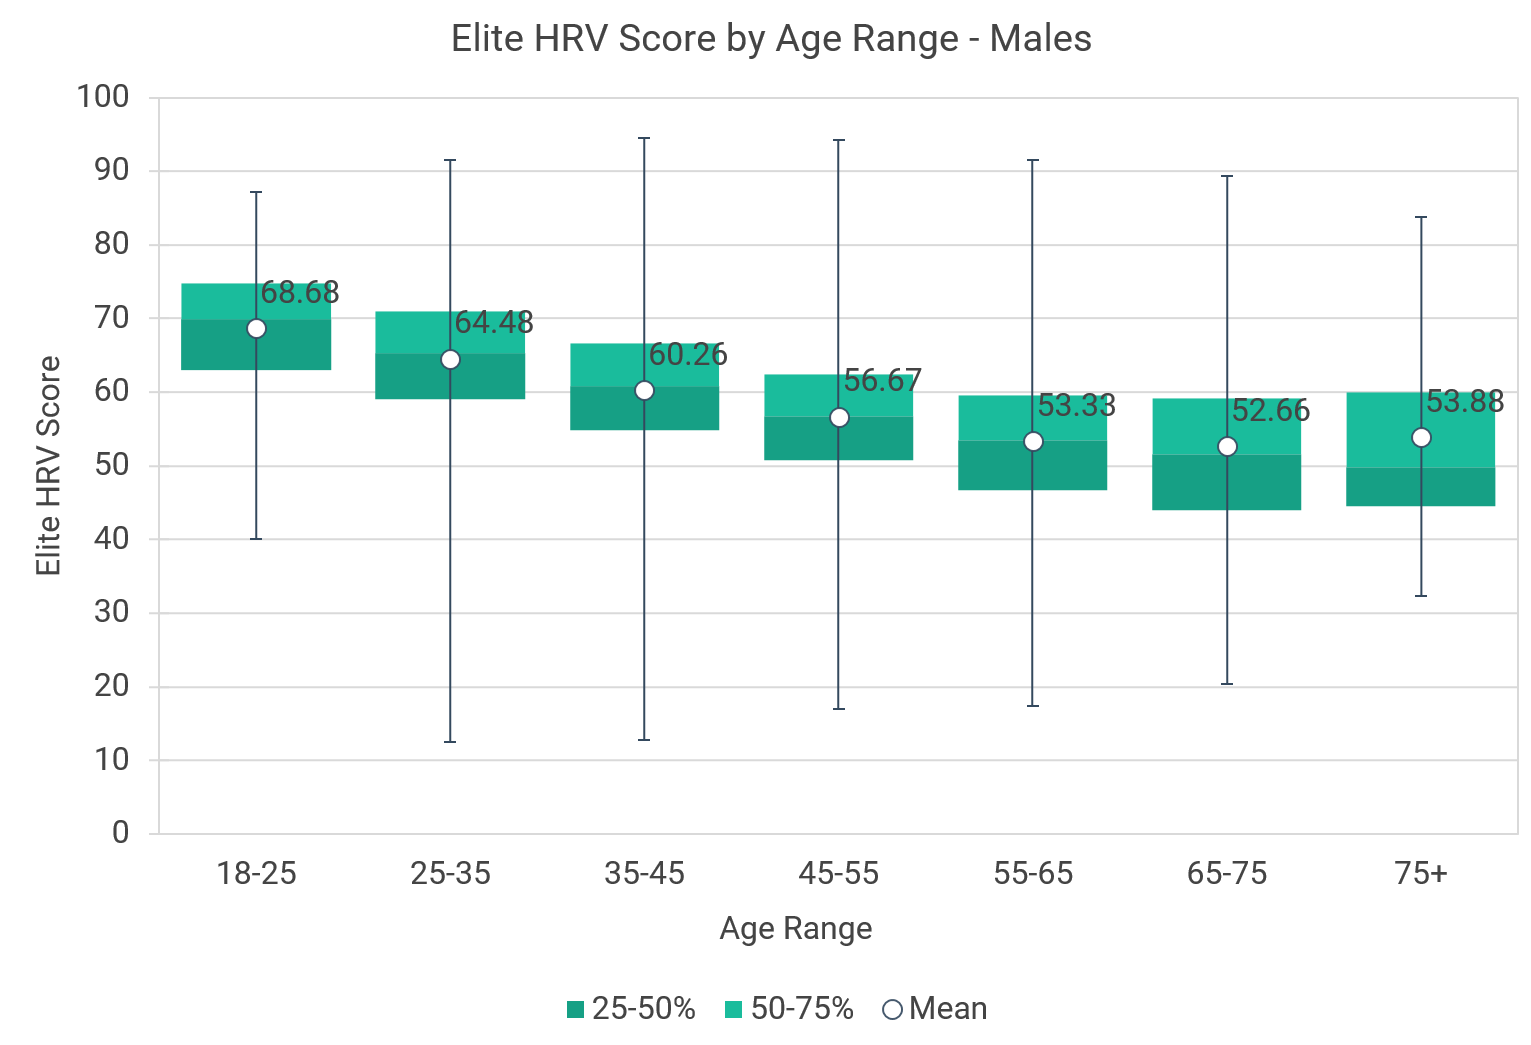 normative elite hrv scores by age and gender elite hrv